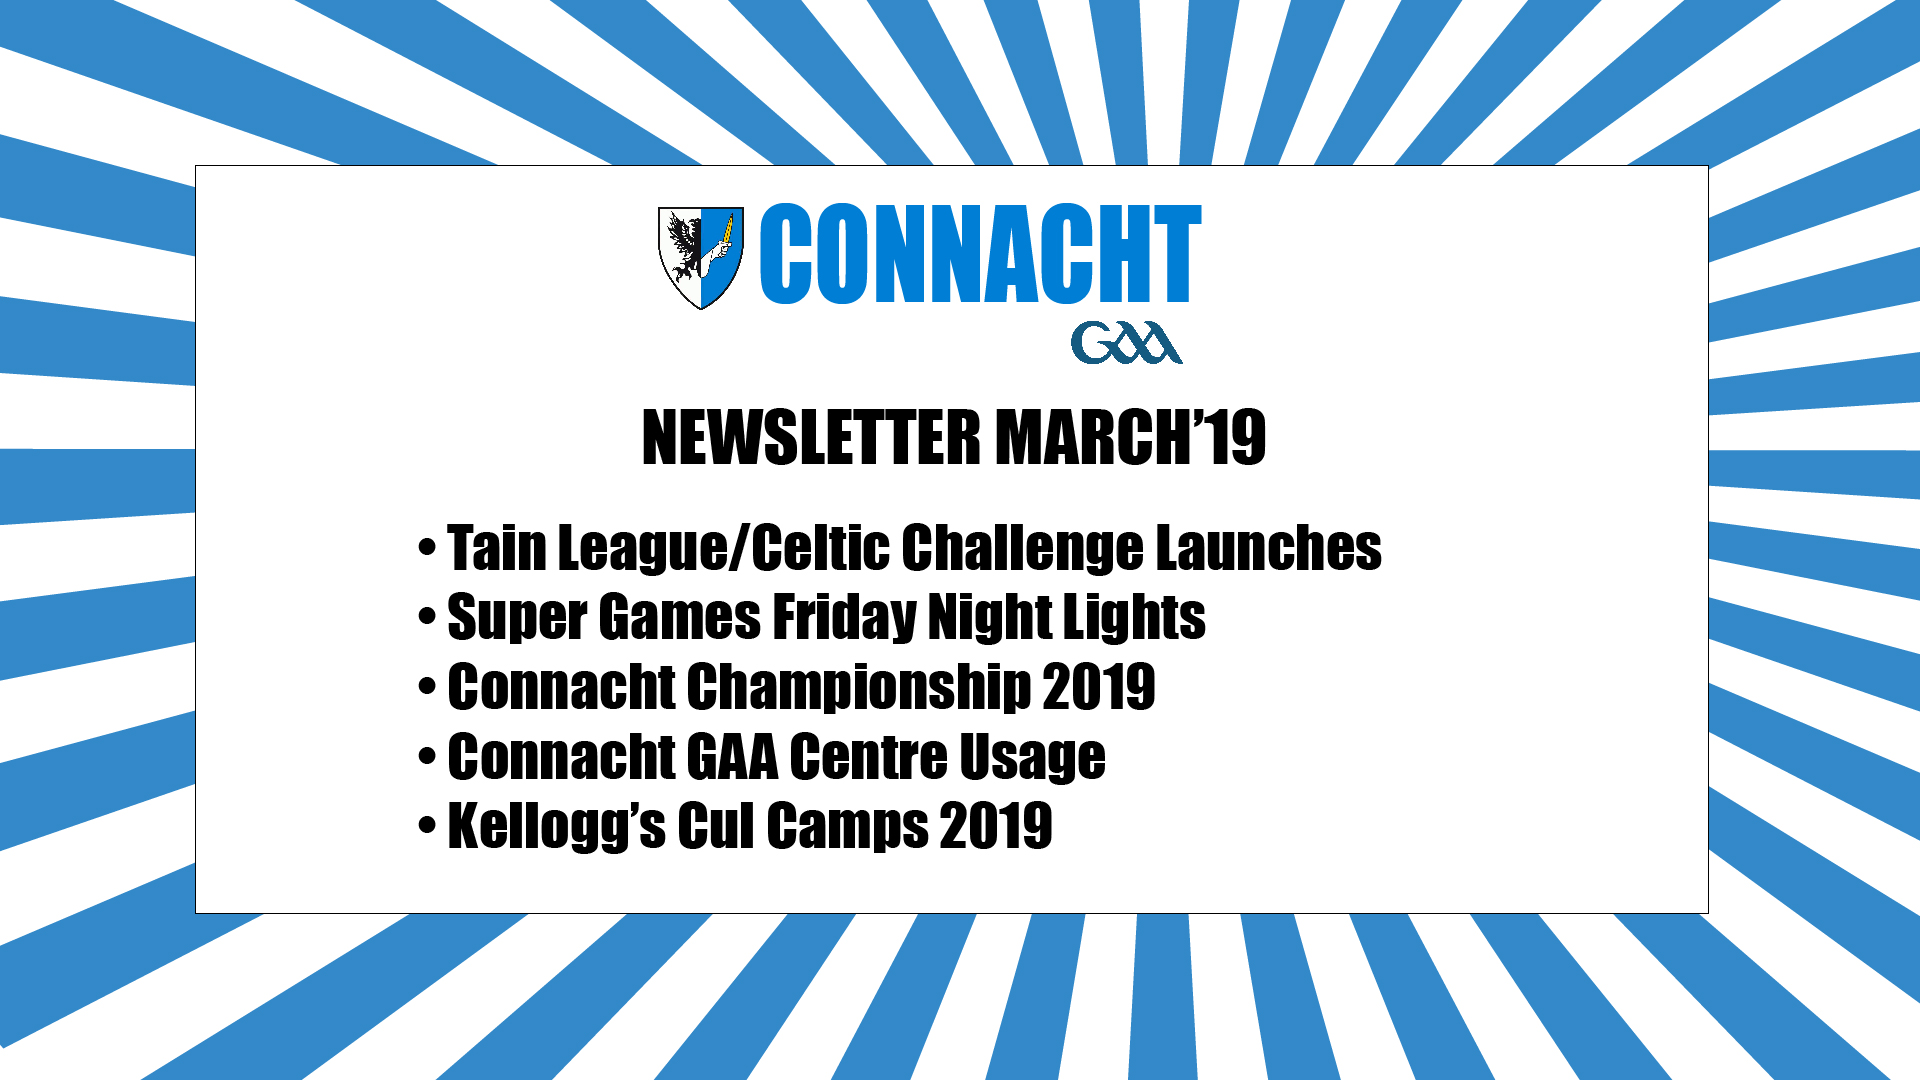 Connacht GAA Newsletter for March Published